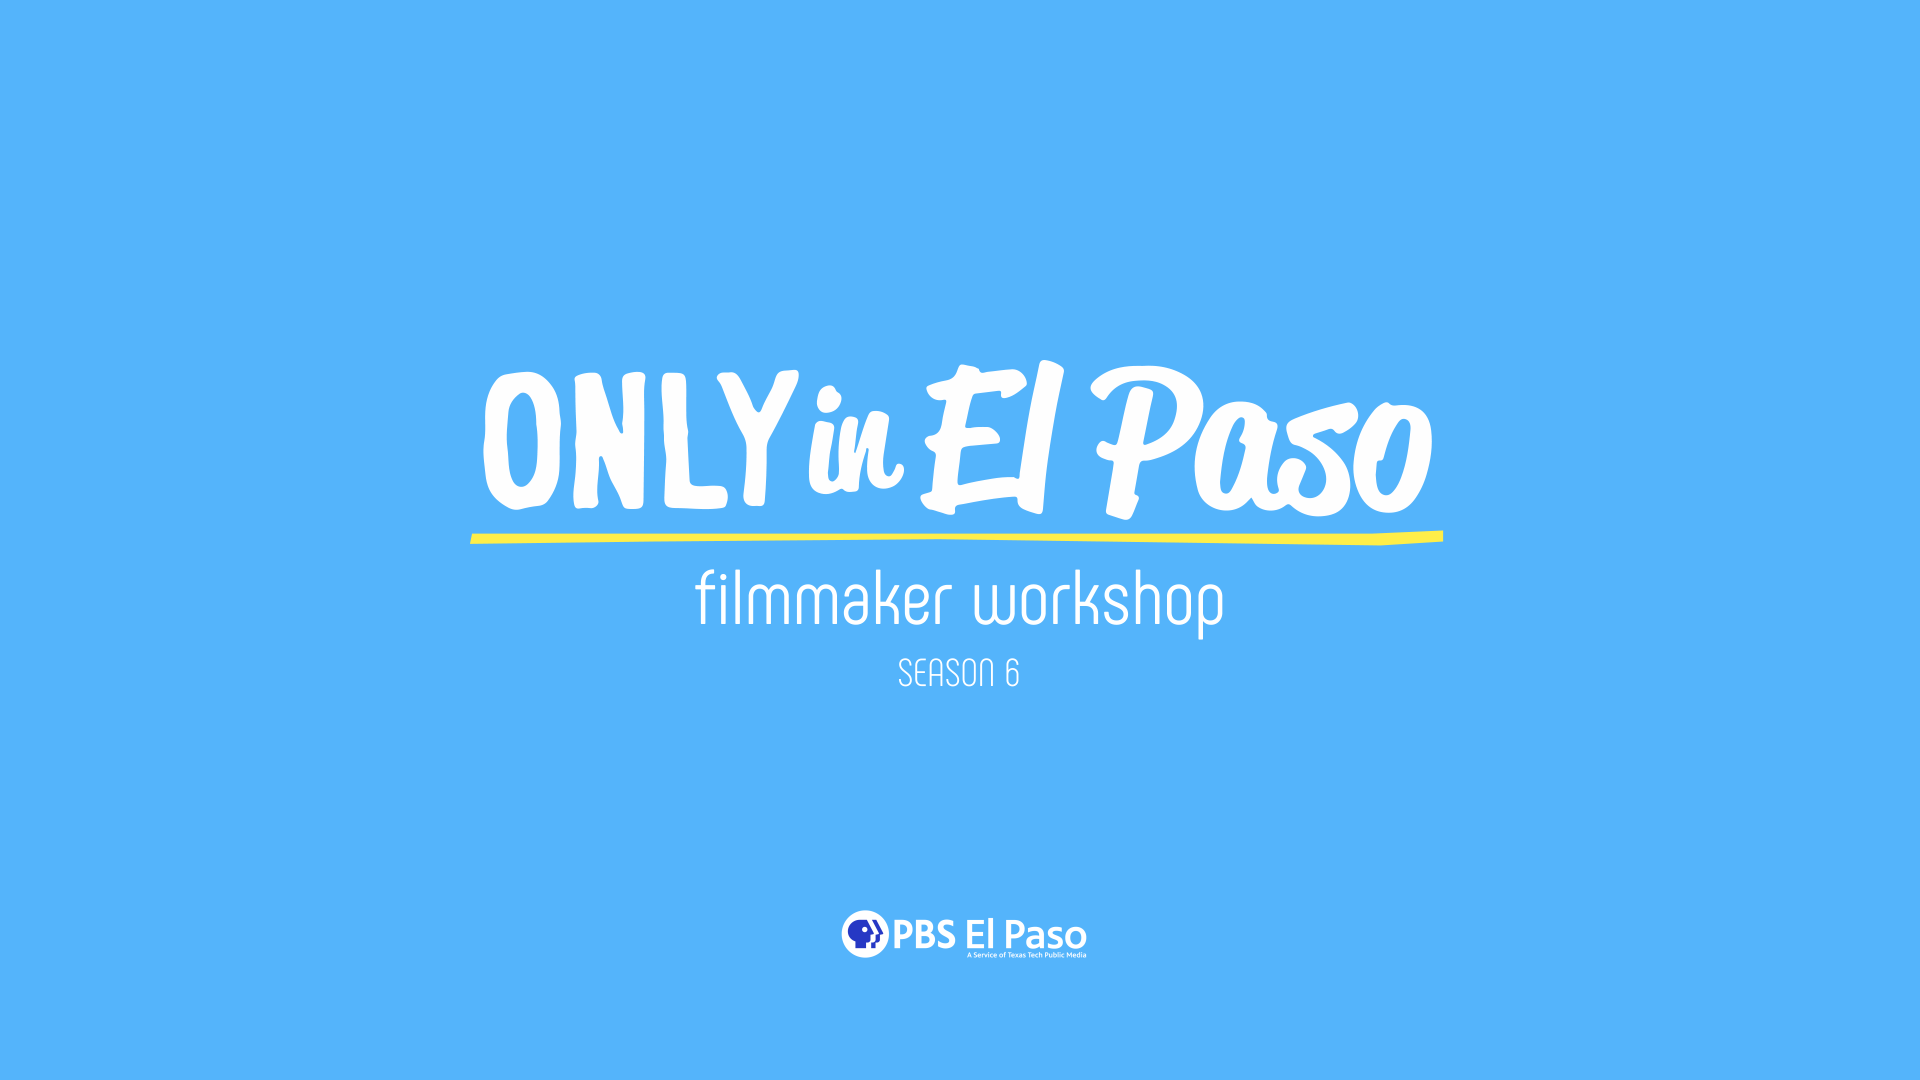 Only In El Paso: Season 6 Workshop